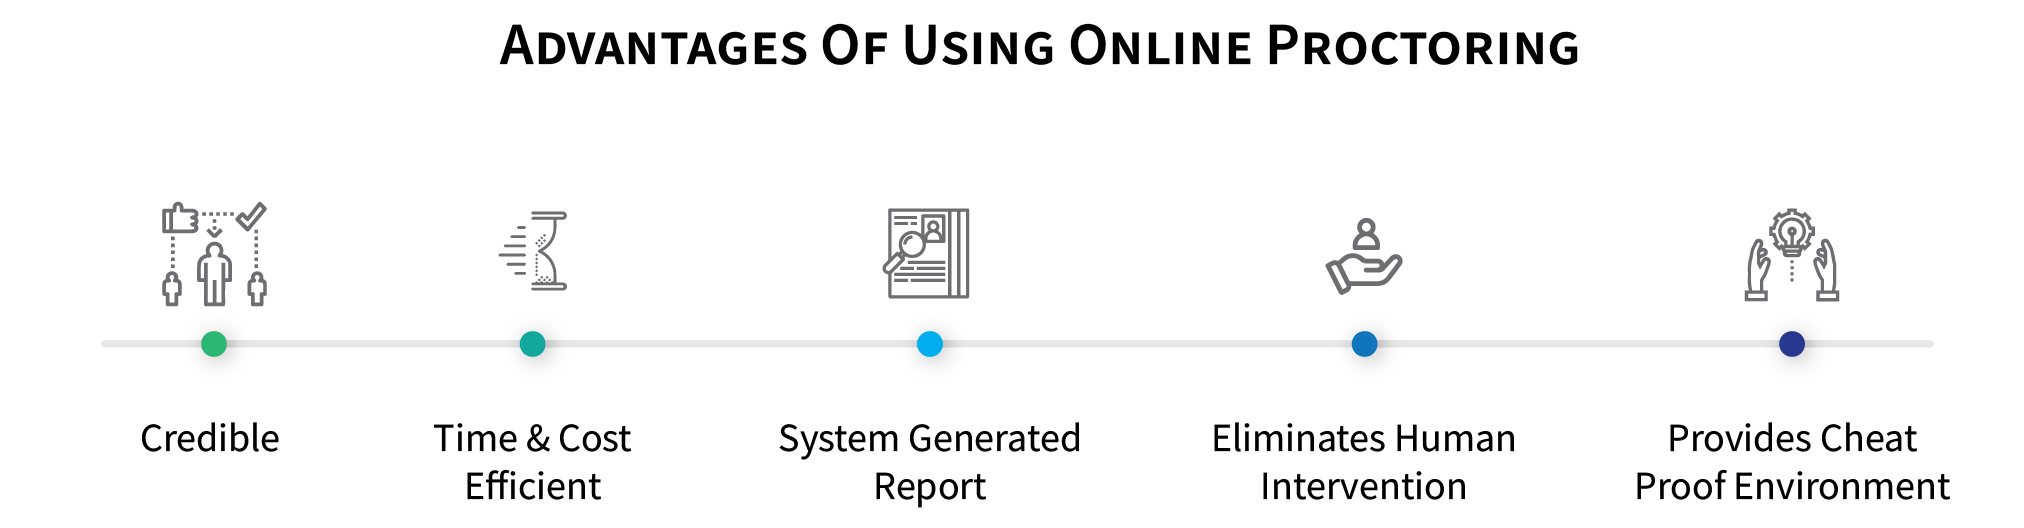 how_ai_is_helping_universities_scale_online_examination_ADVANTAGES_OF_ONLINE_PROCTORING